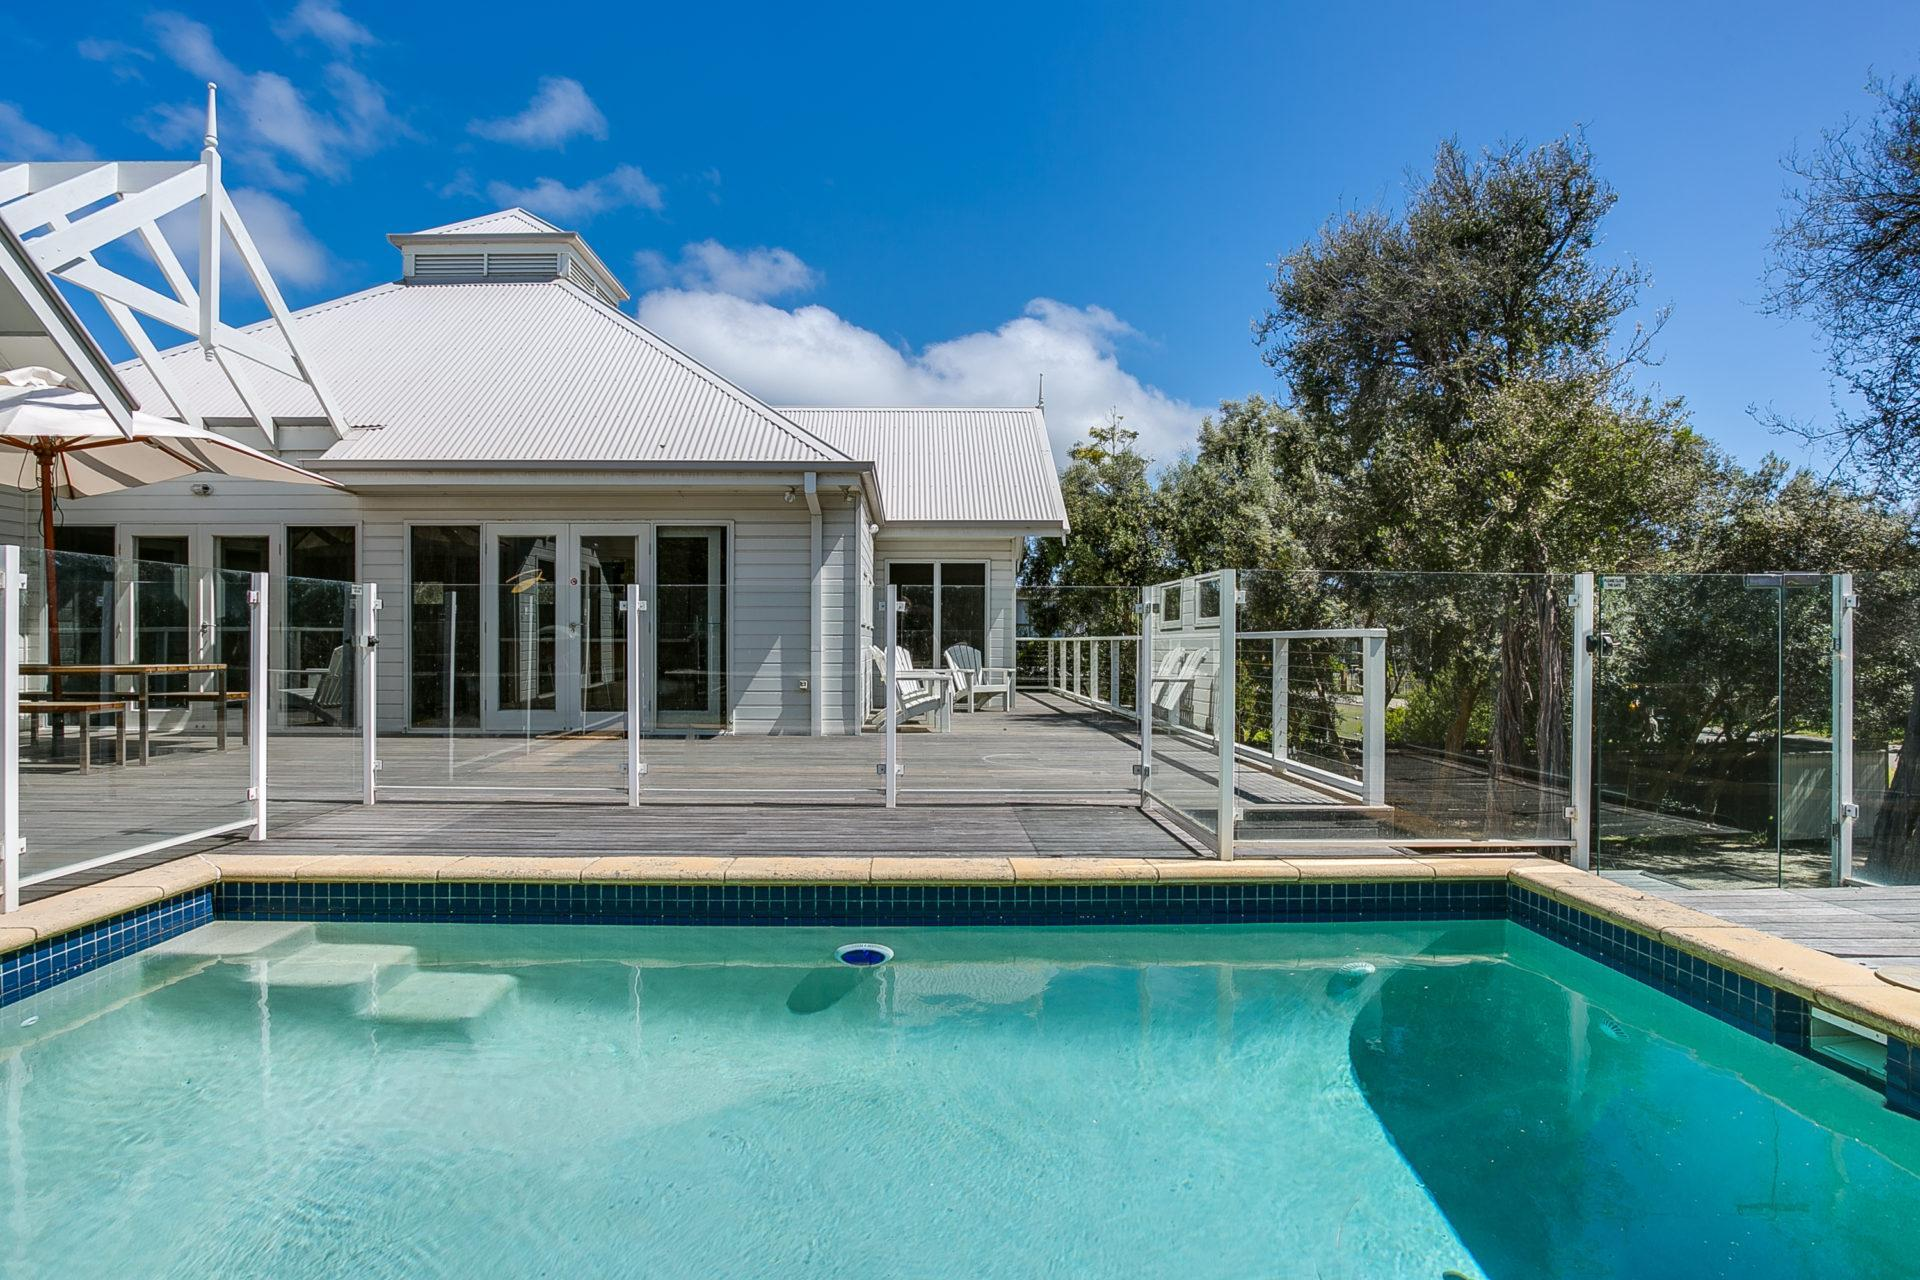 4 Bedrooms Perfect Blairgowrie Beach House